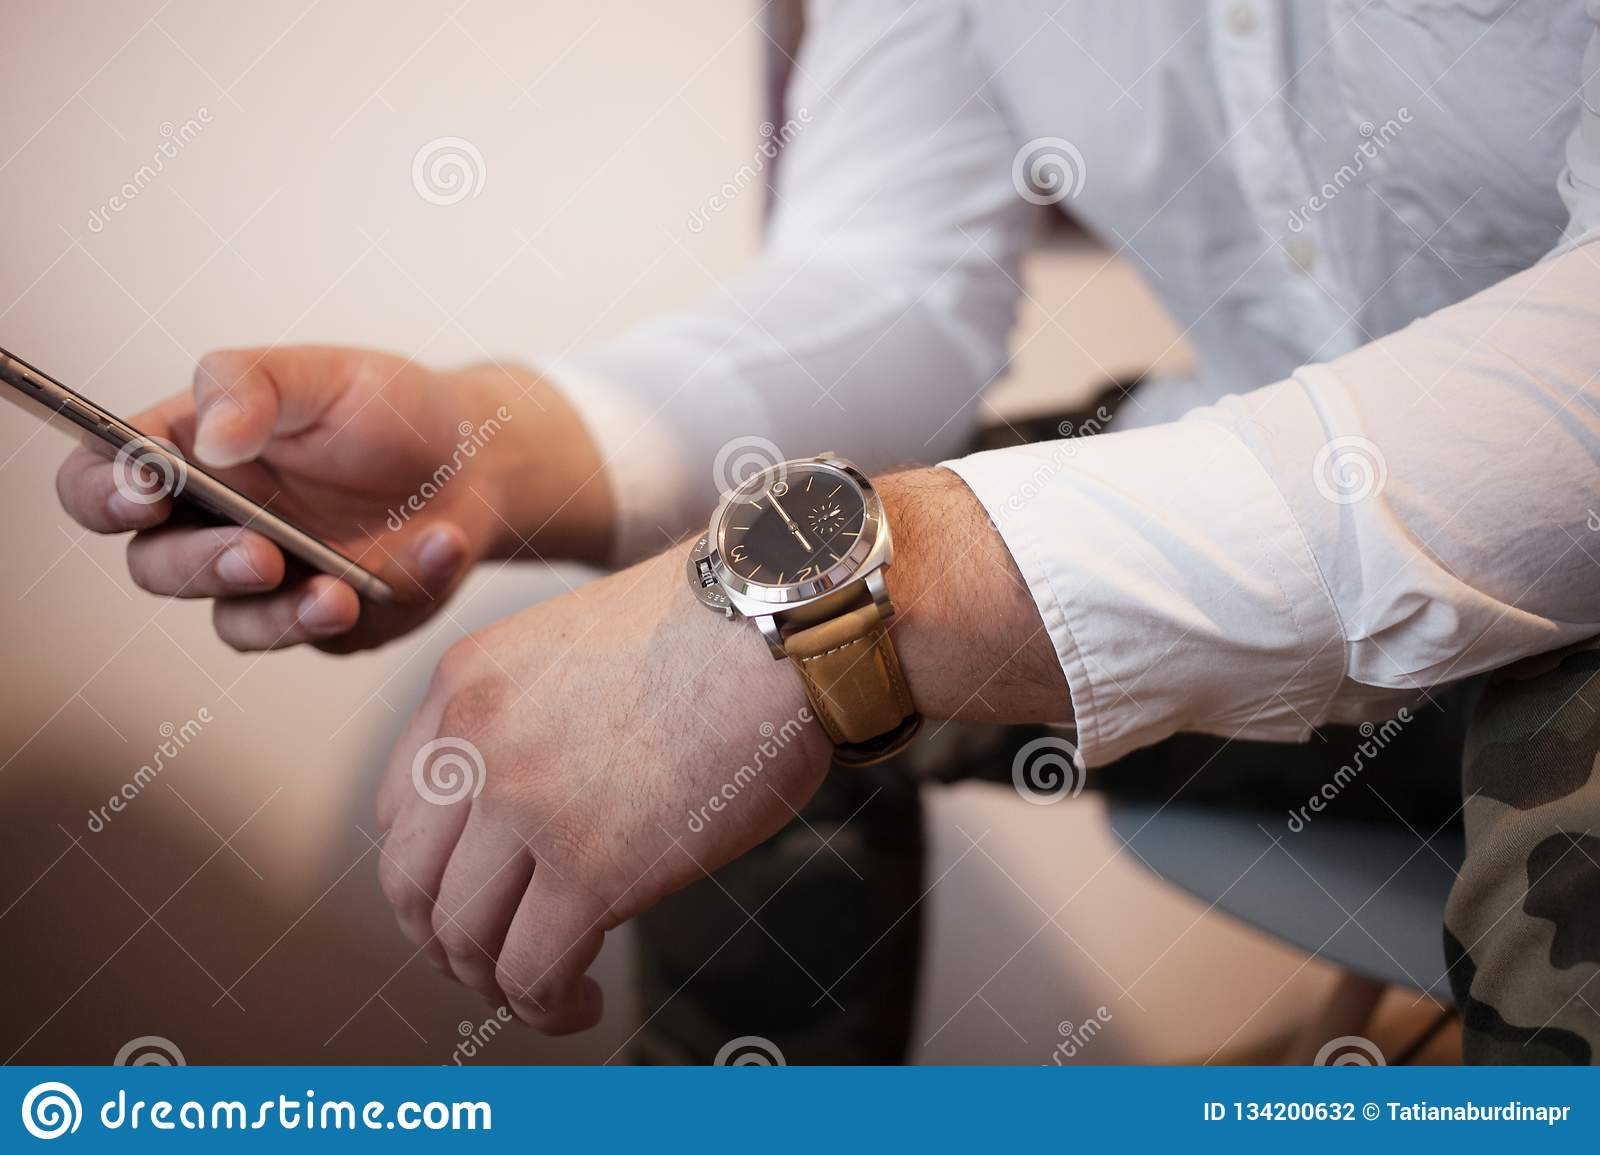 A man with smart phone in a relaxed pose in a white shirt is typing sms psychology and negotiation concept